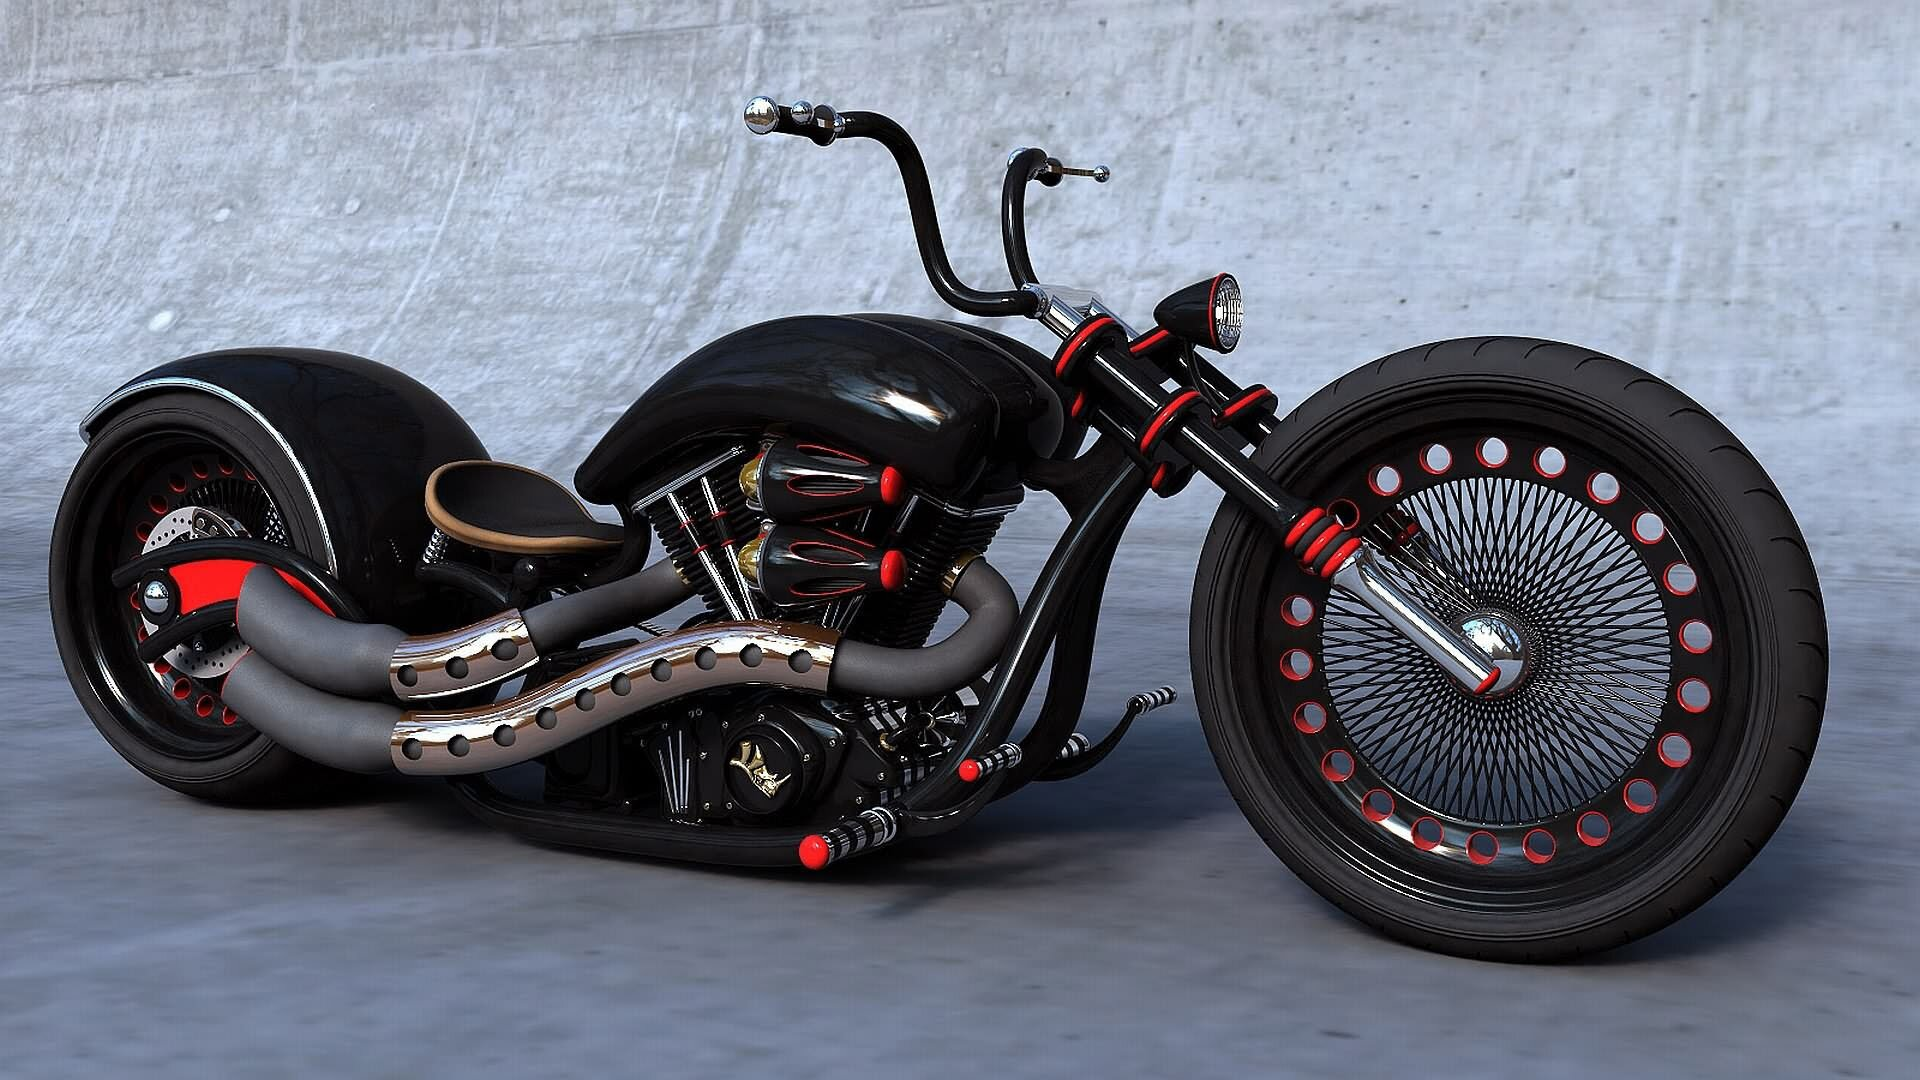 coolest motorcycles 13